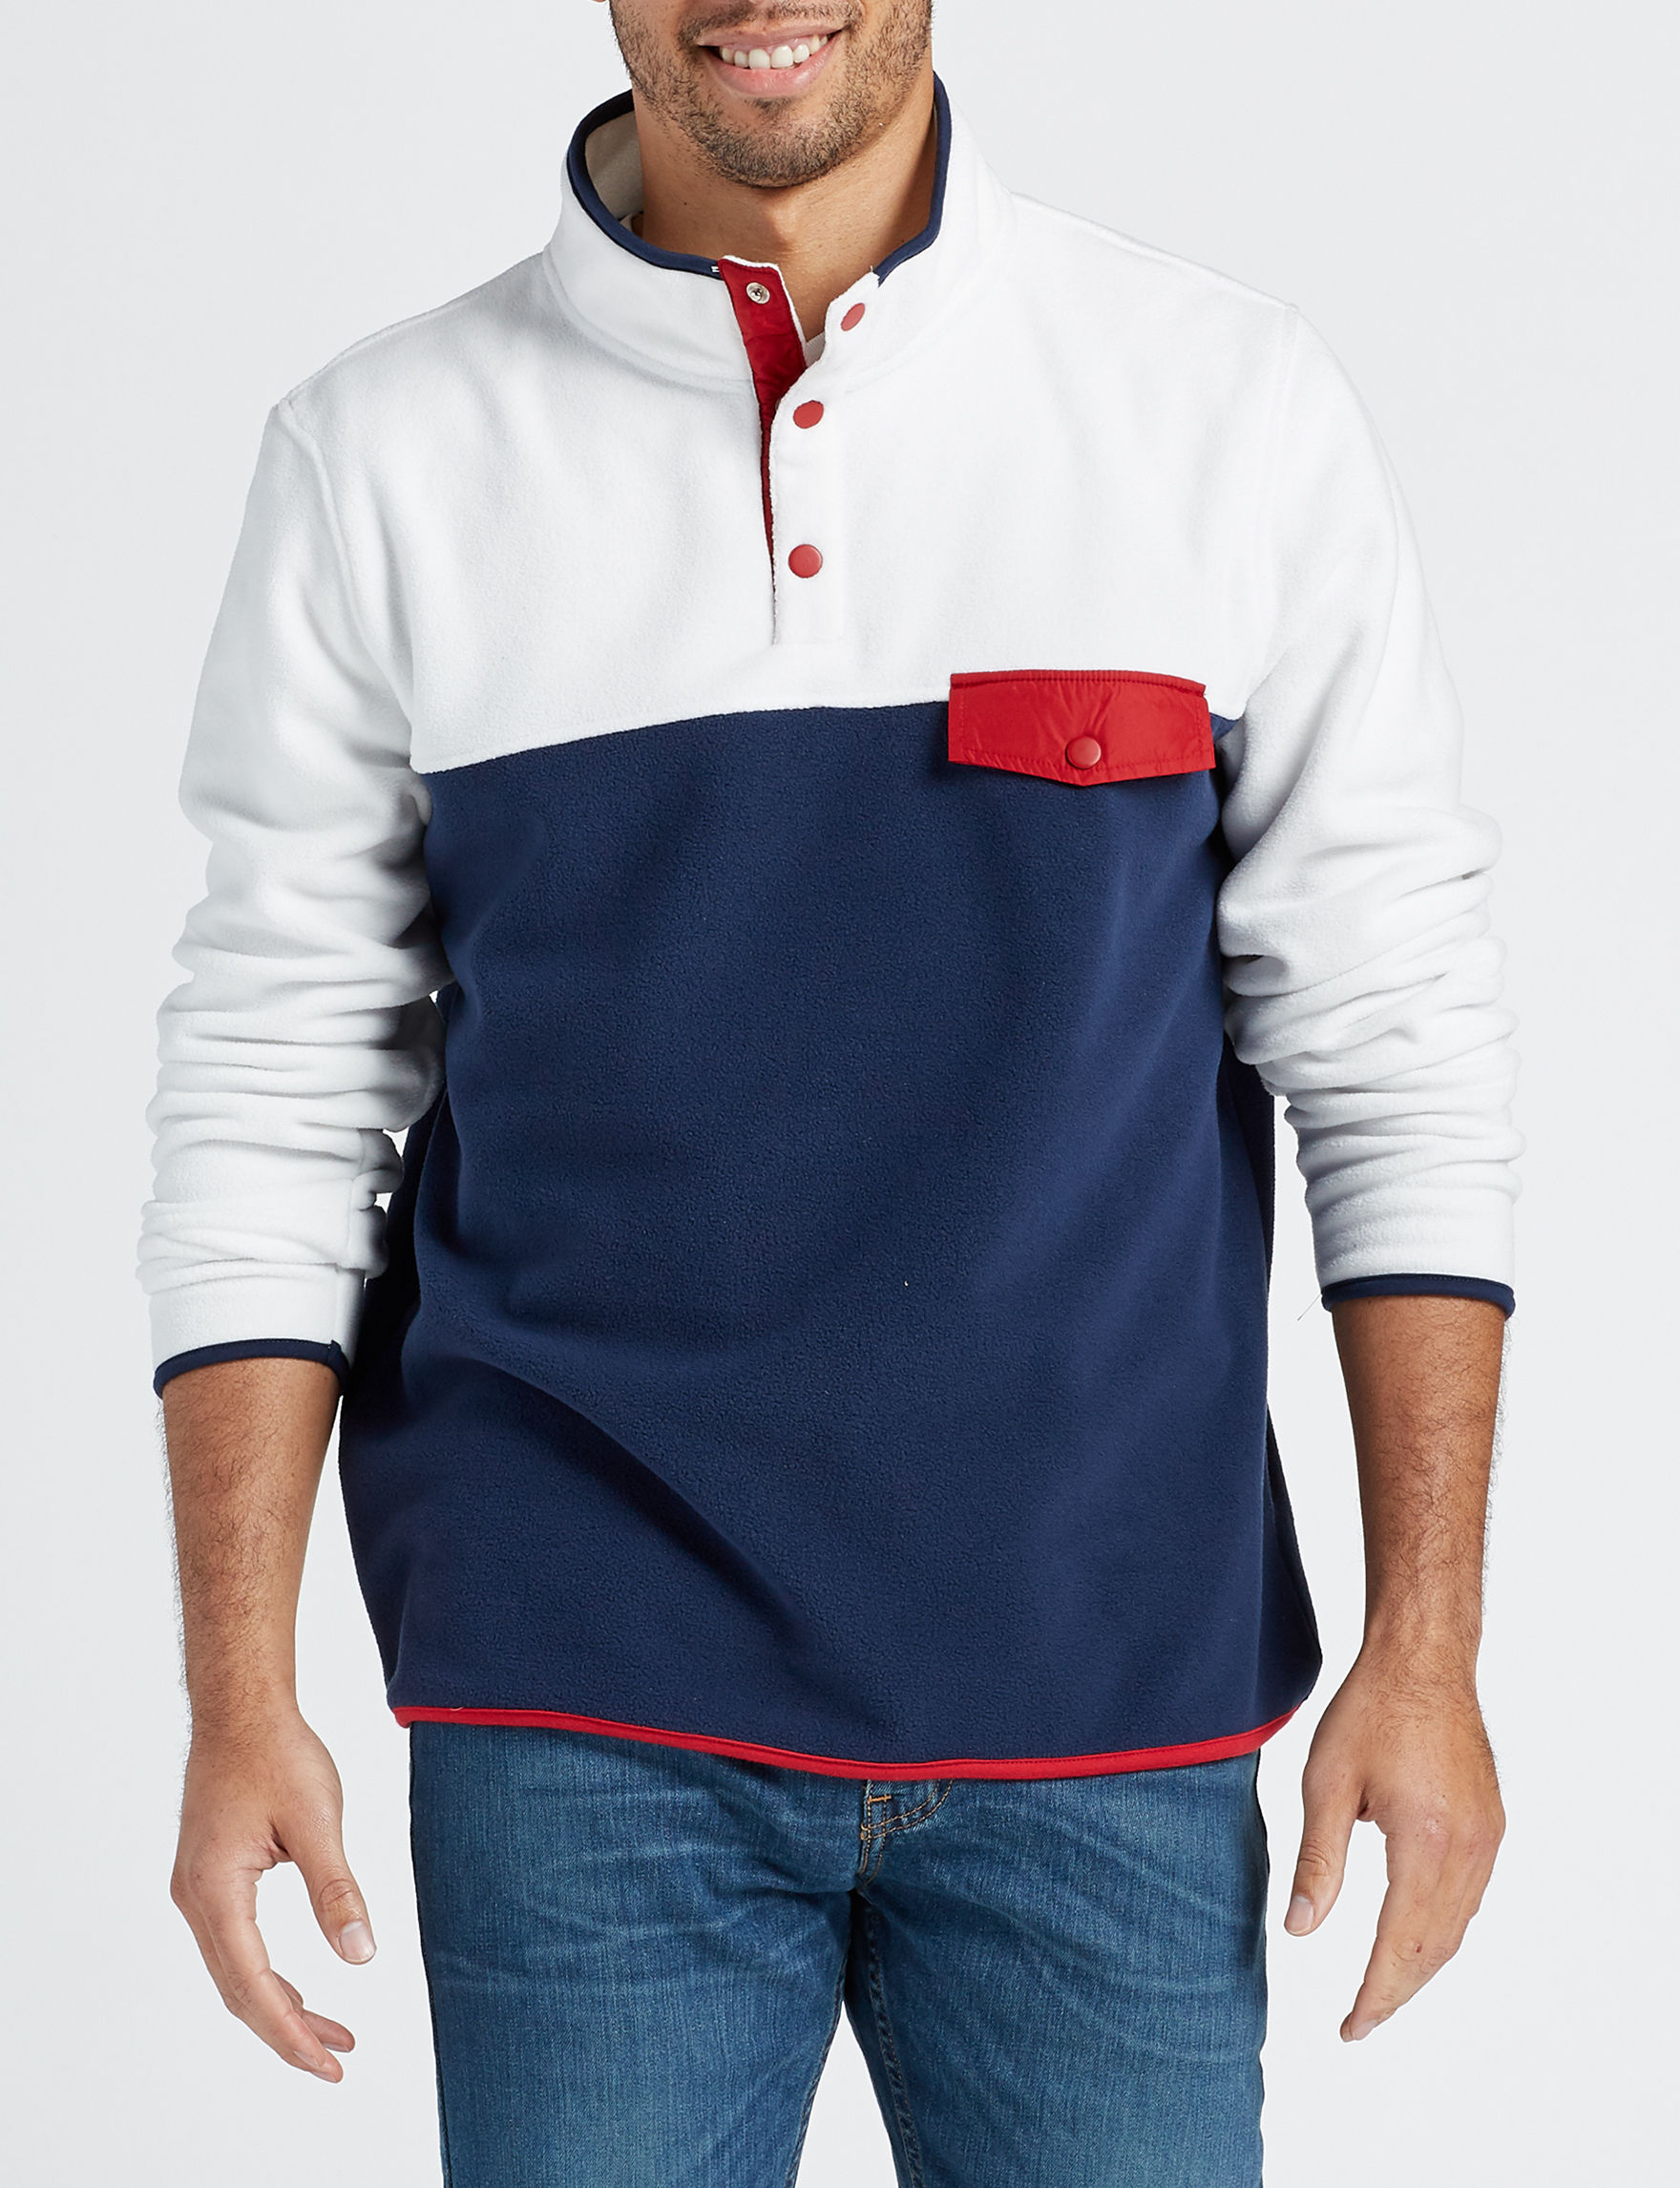 Company 81 White / Multi Pull-overs